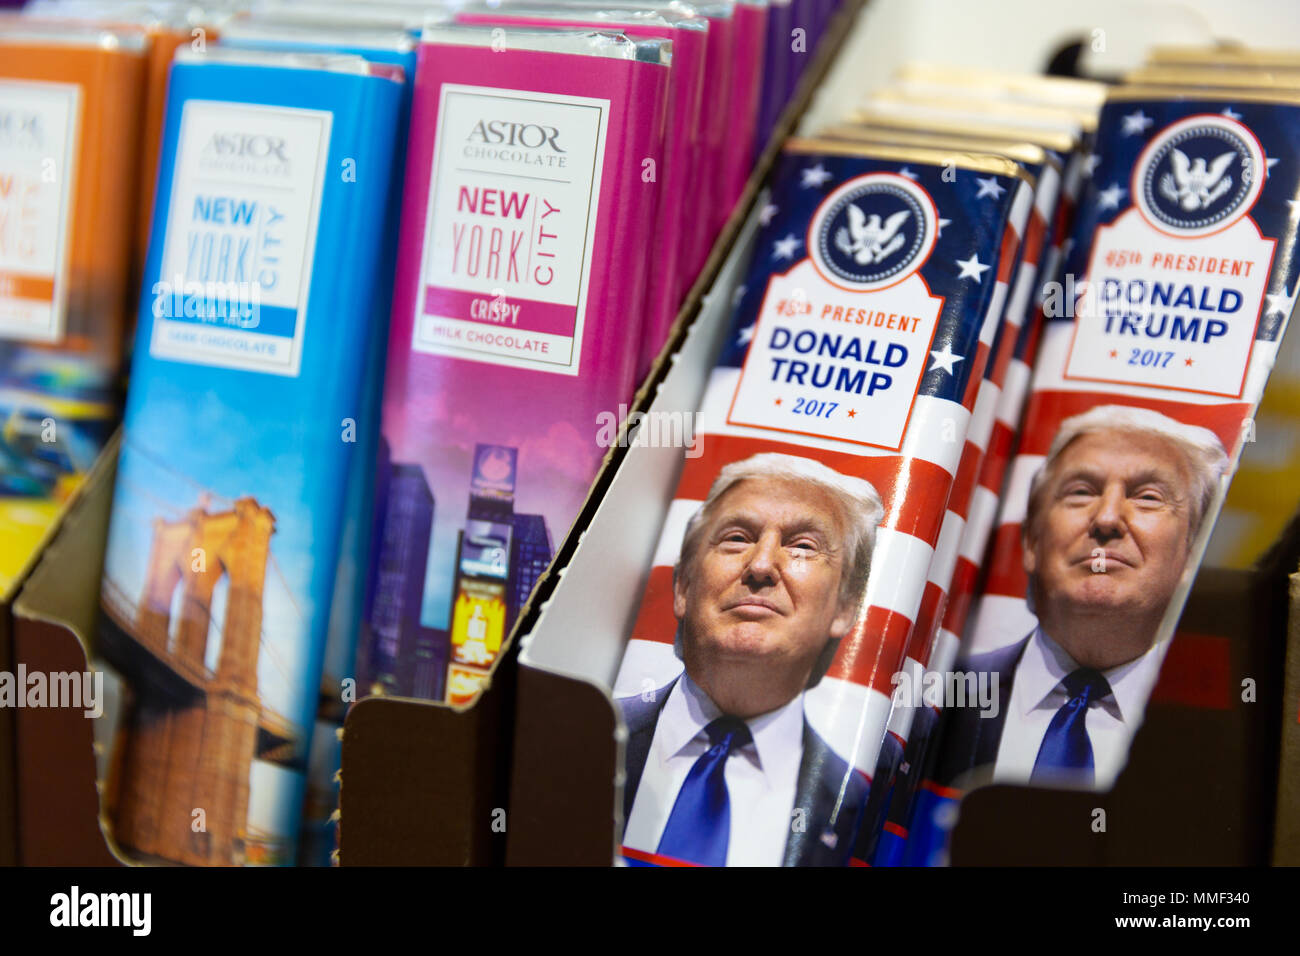 NEW YORK -  MAY 3, 2018: Trump chocolate bars sold in gift shop. Donald J. Trump is the 45th and current president of the United States. Stock Photo